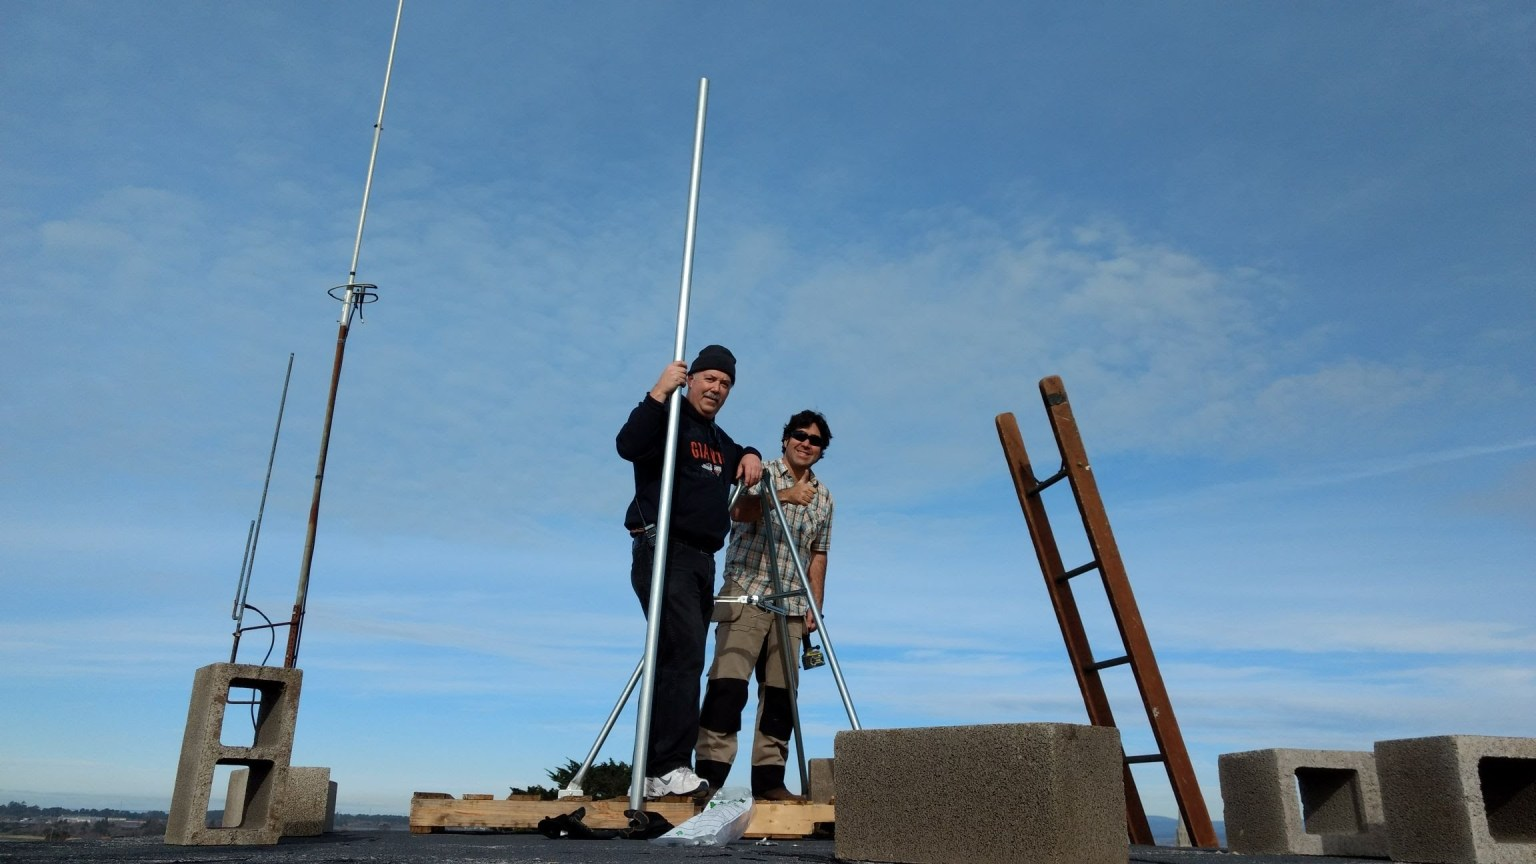 Two people erecting an antenna mast